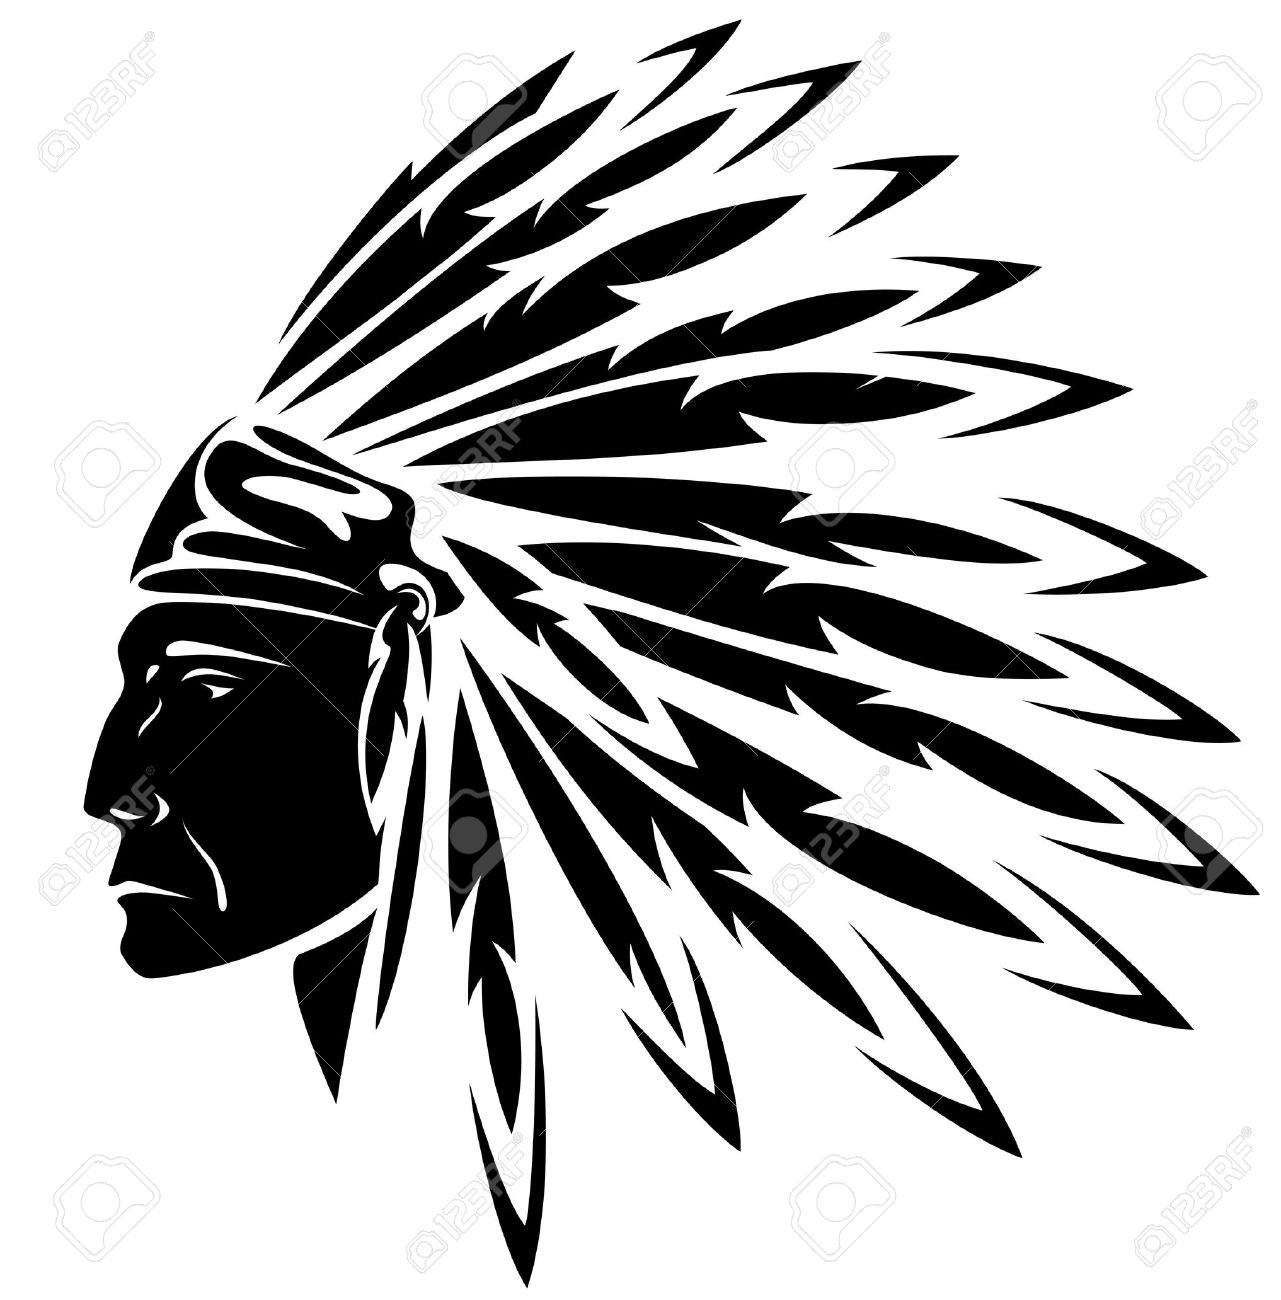 Indian Chief: Red Indian Chief Black And-indian chief: red indian chief black and white illustration-9